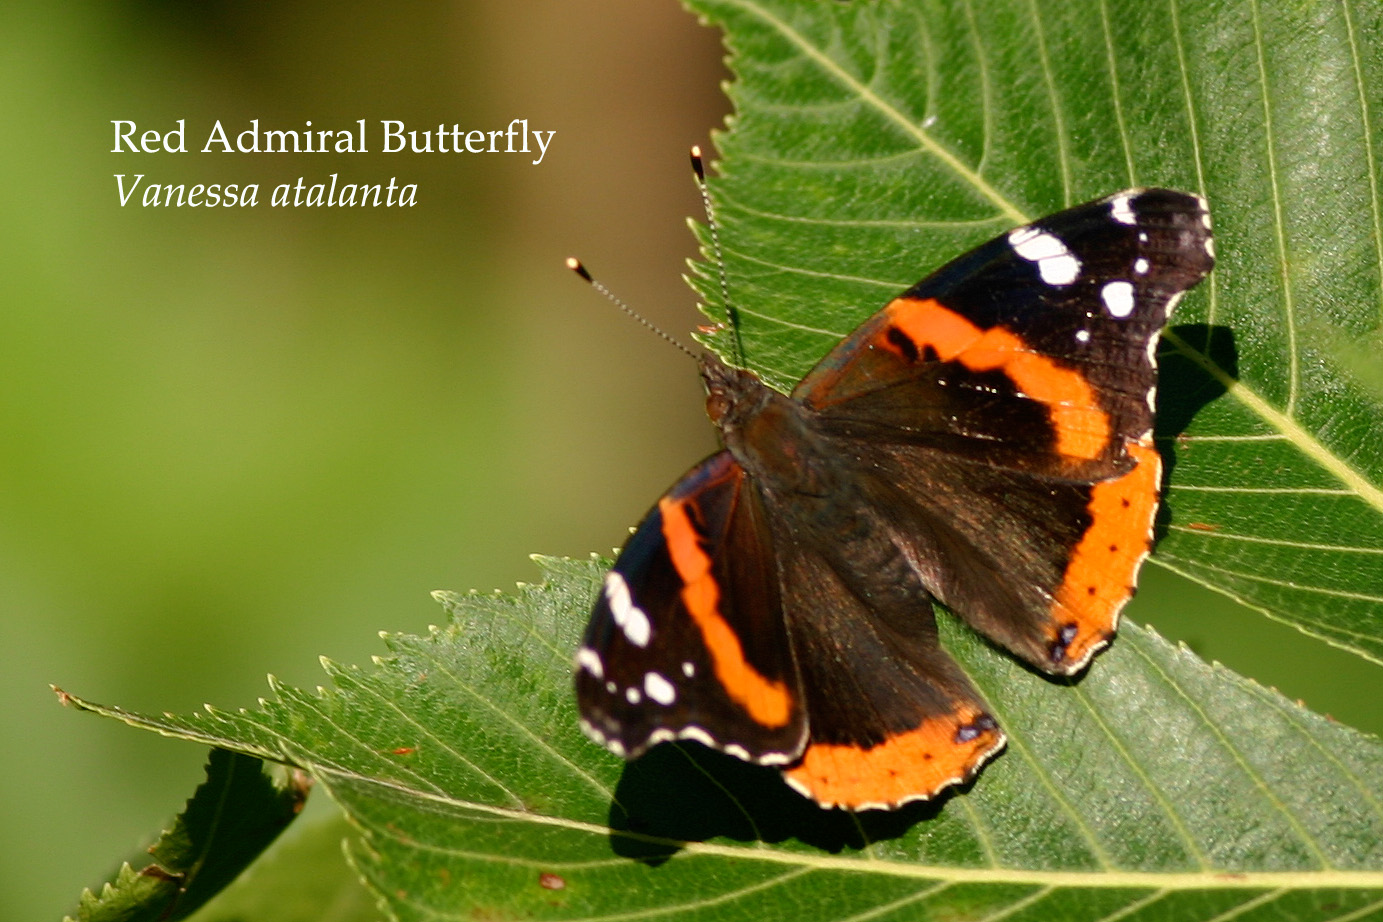 Red Admiral Butterfly at Kuse Nature Preserve